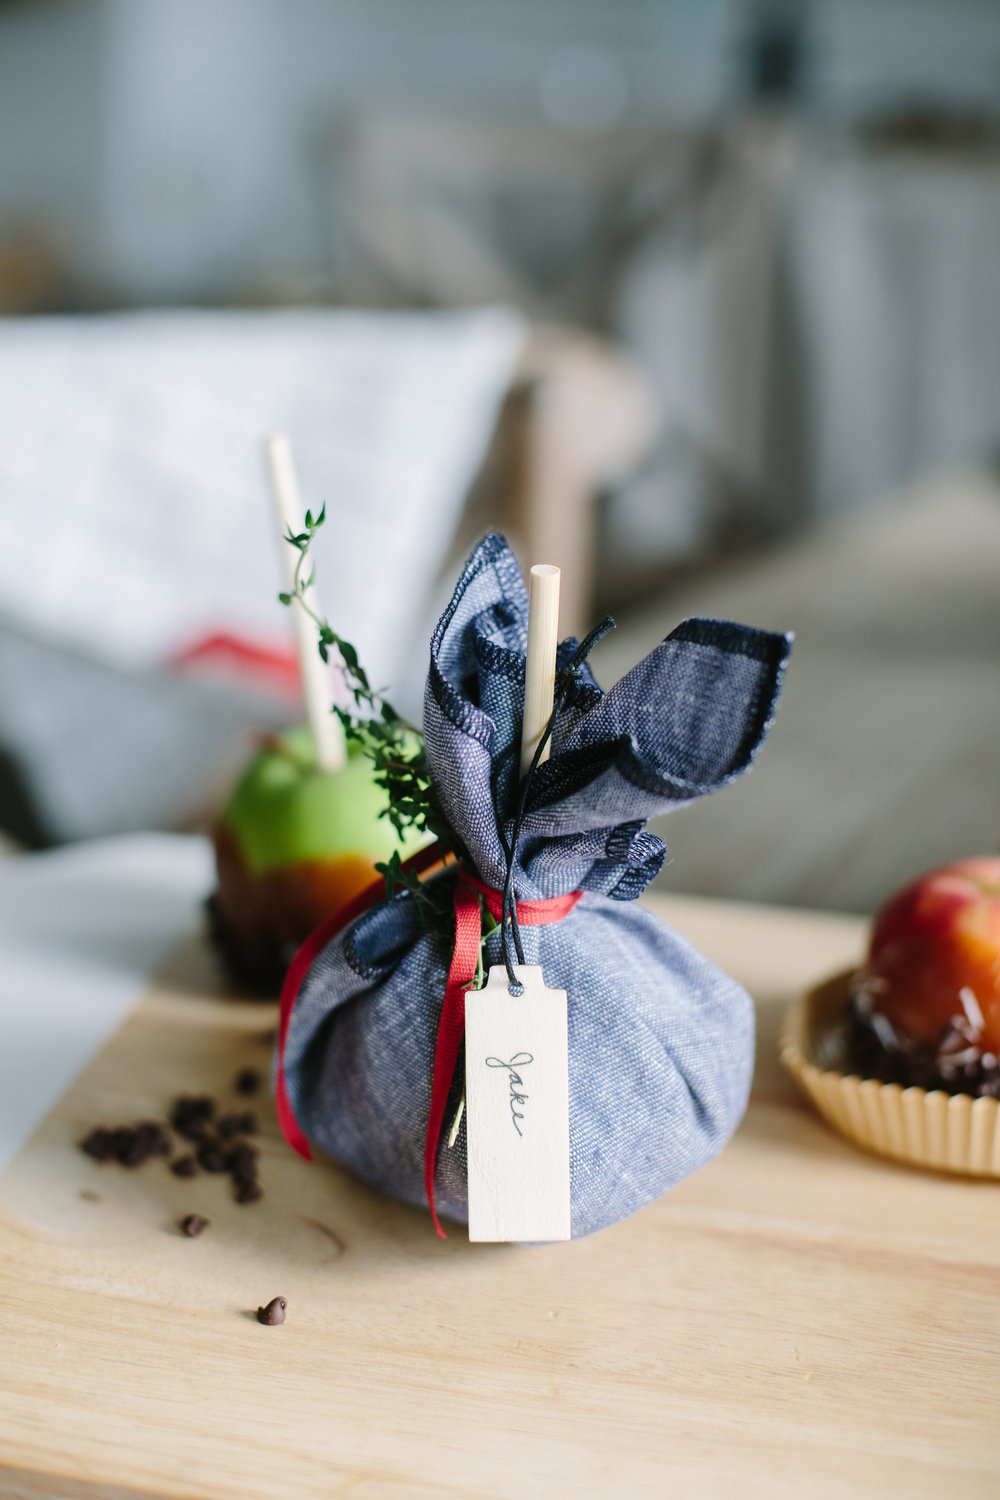 candy-apples-gift-holiday-wrap-idea-cloth-napkin